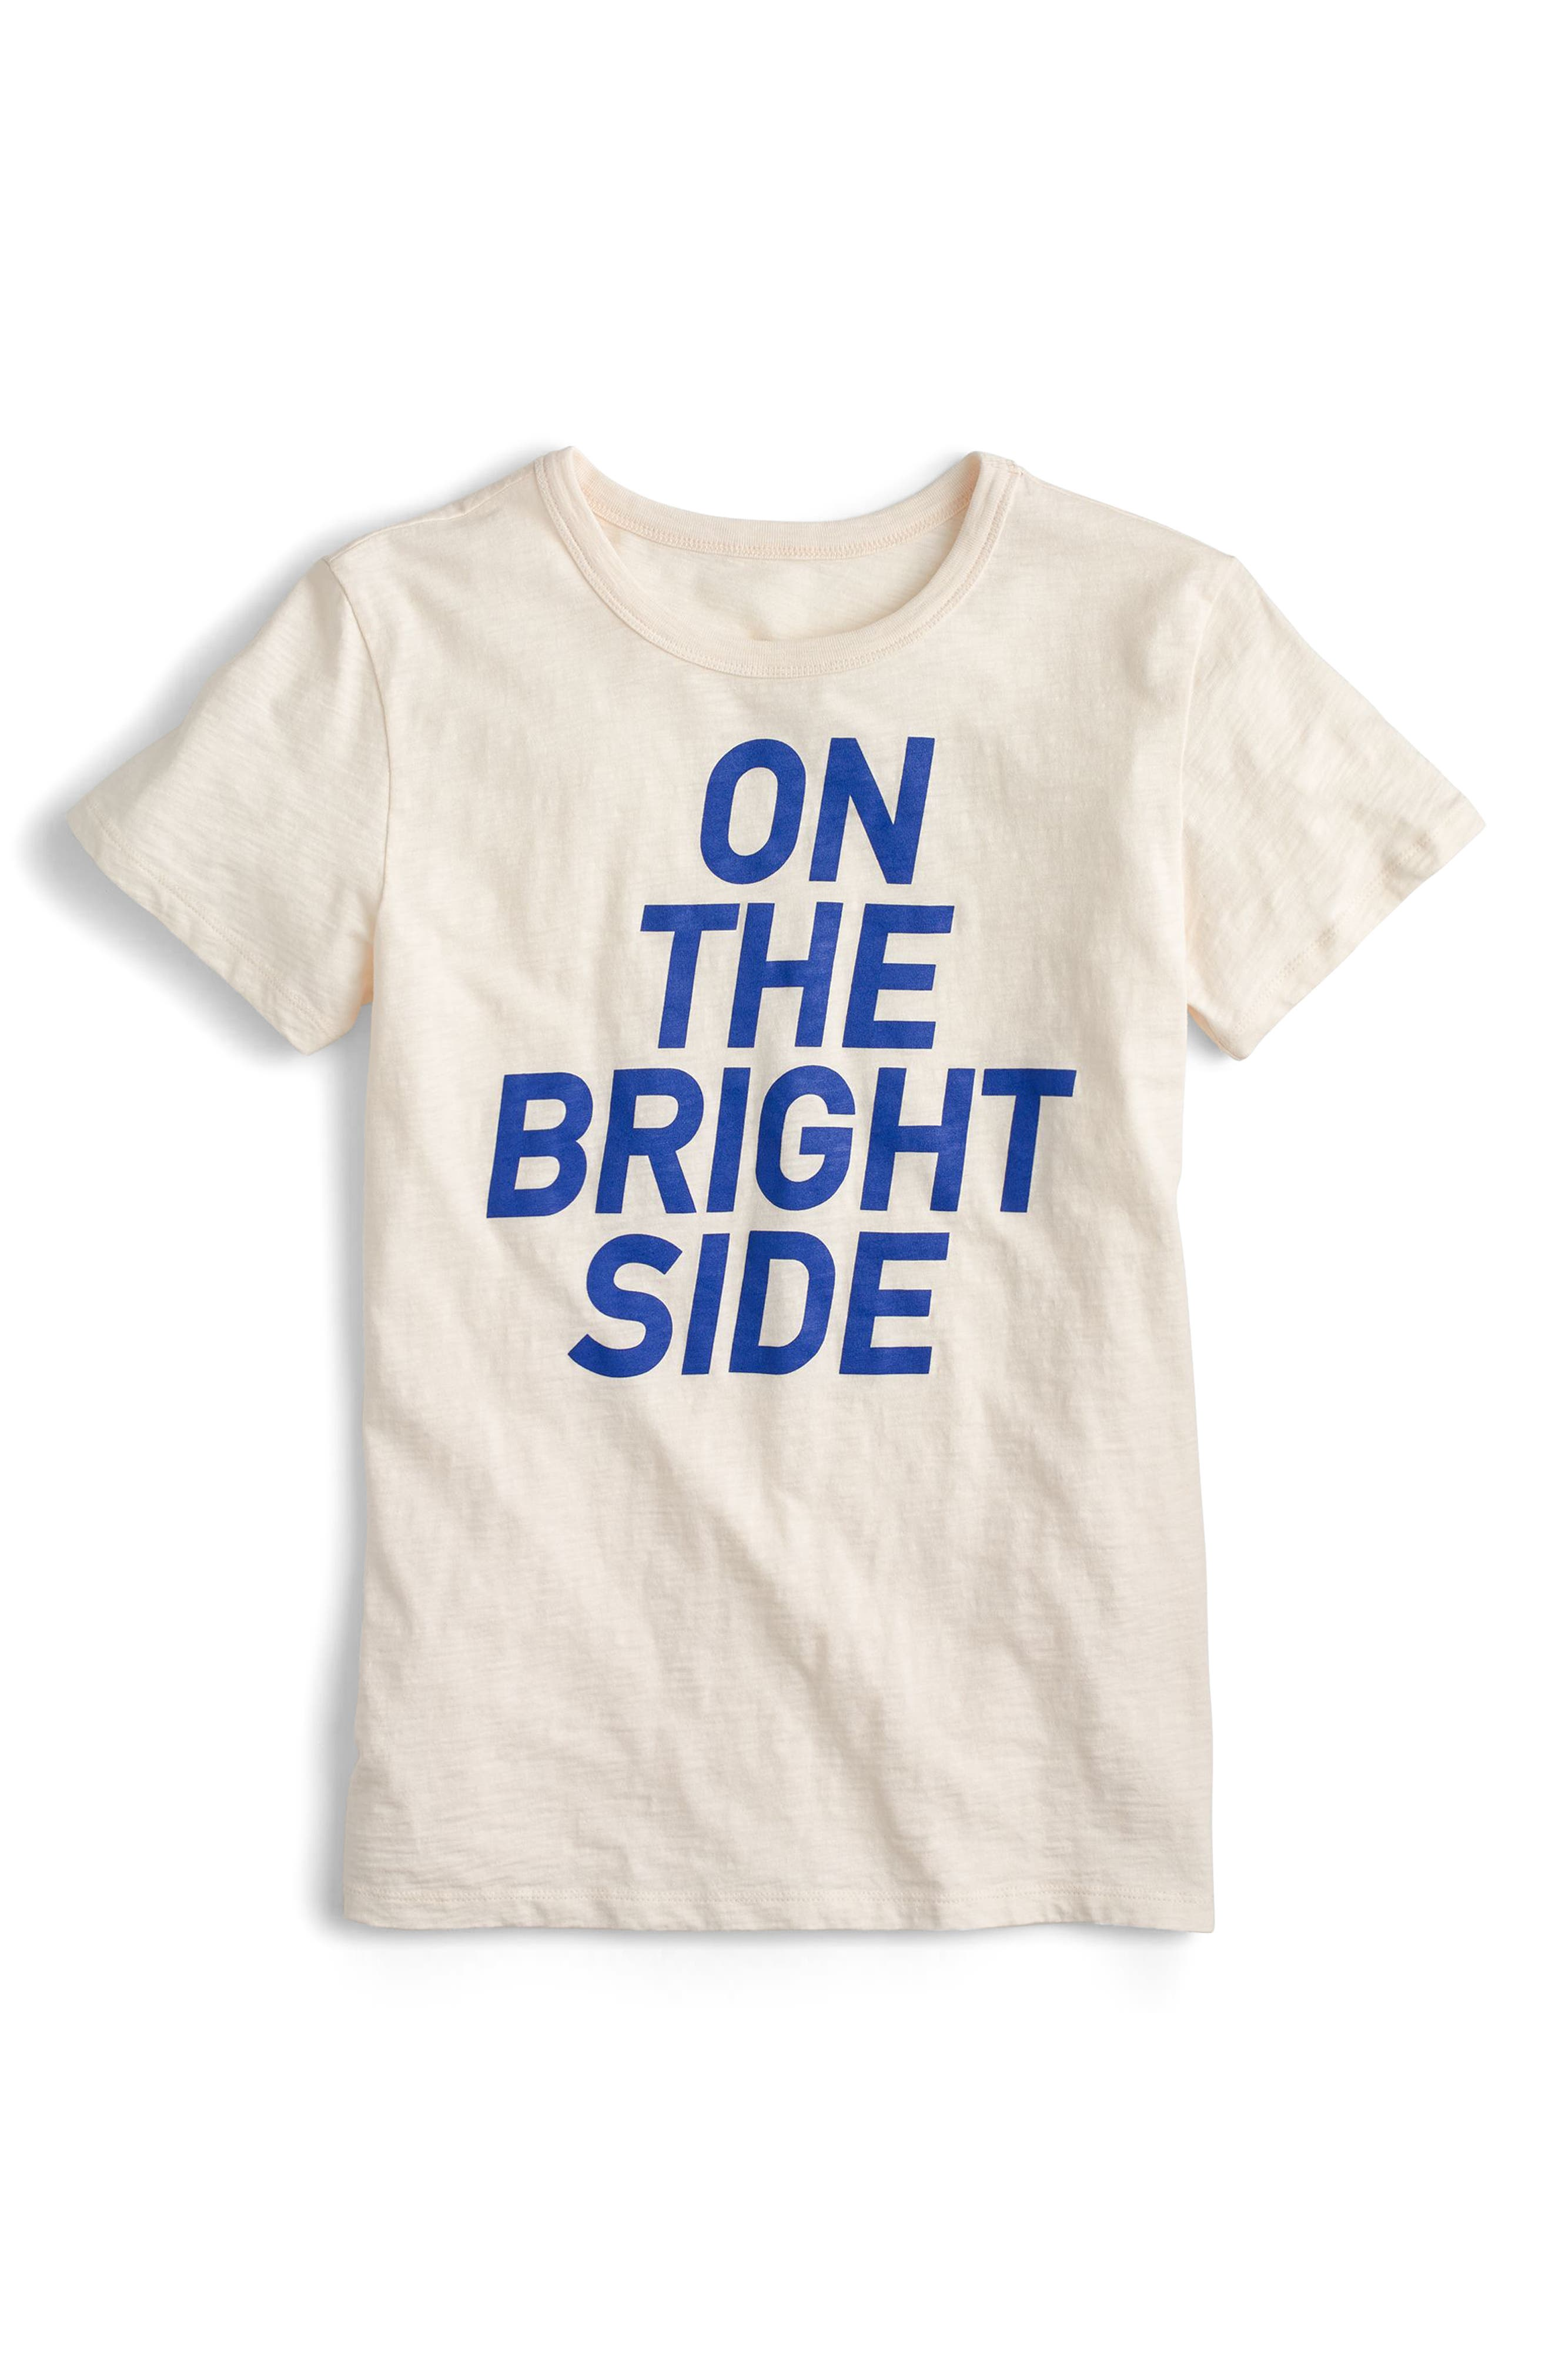 J.Crew On the Bright Side Tee,                             Main thumbnail 1, color,                             Ivory